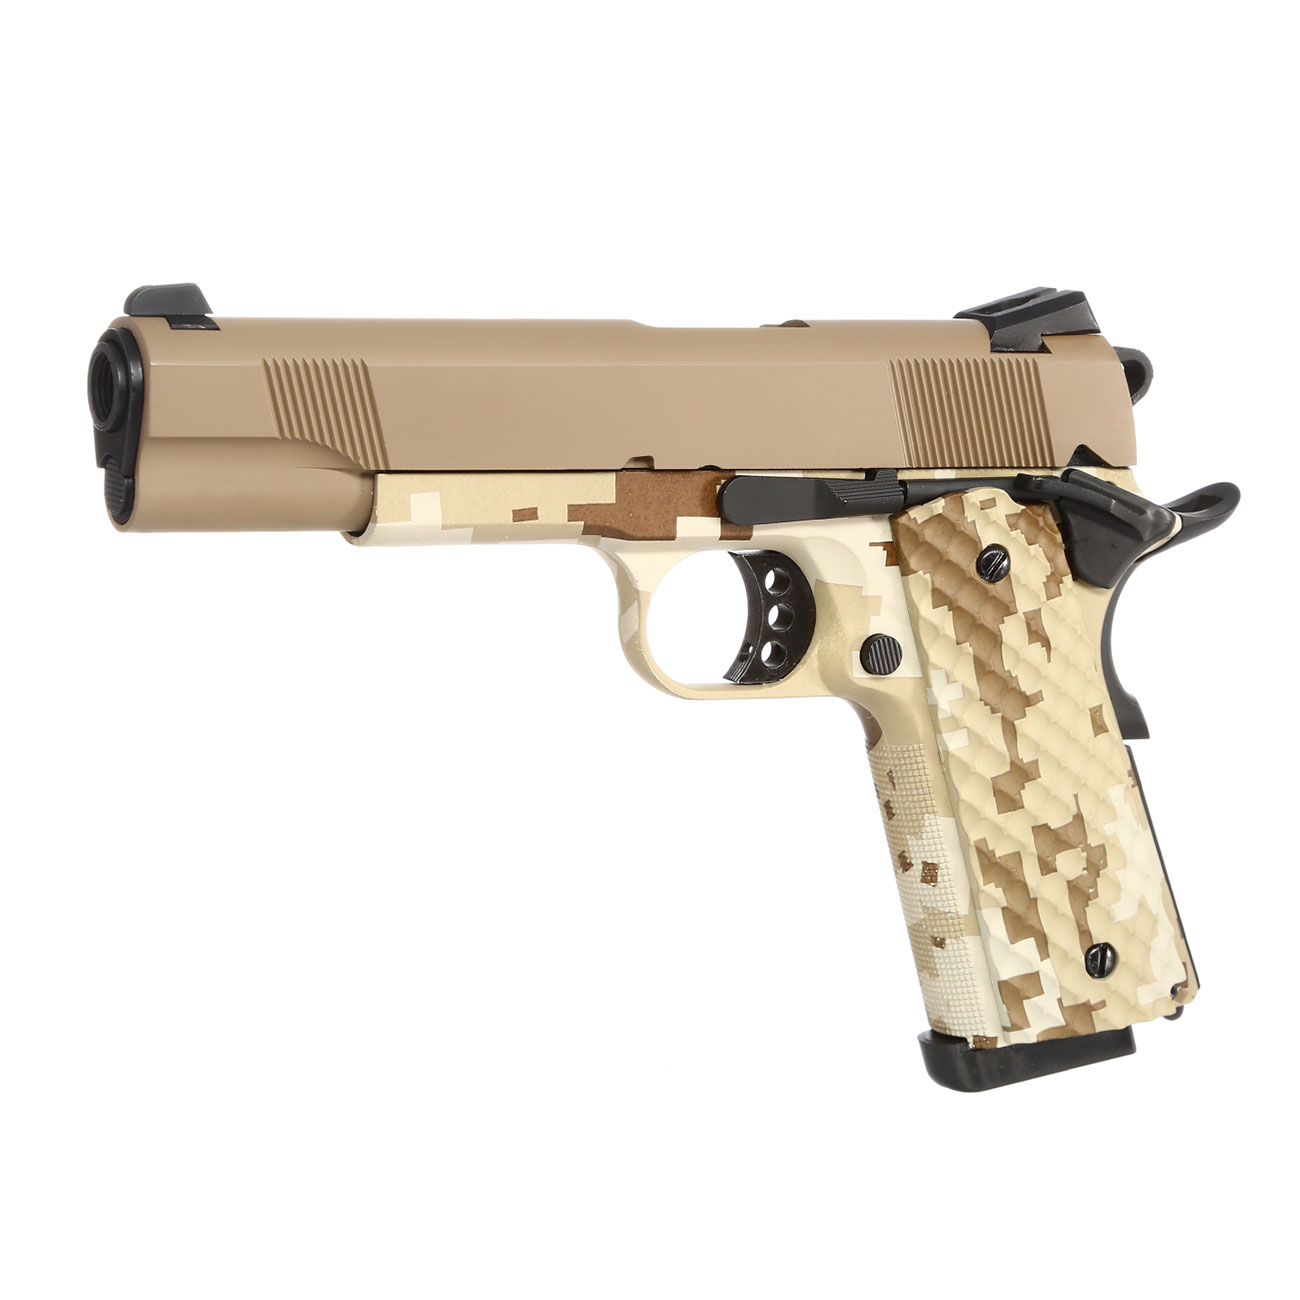 Nuprol Raven M1911 MEU Vollmetall GBB 6mm BB Tan / Digital Desert 0